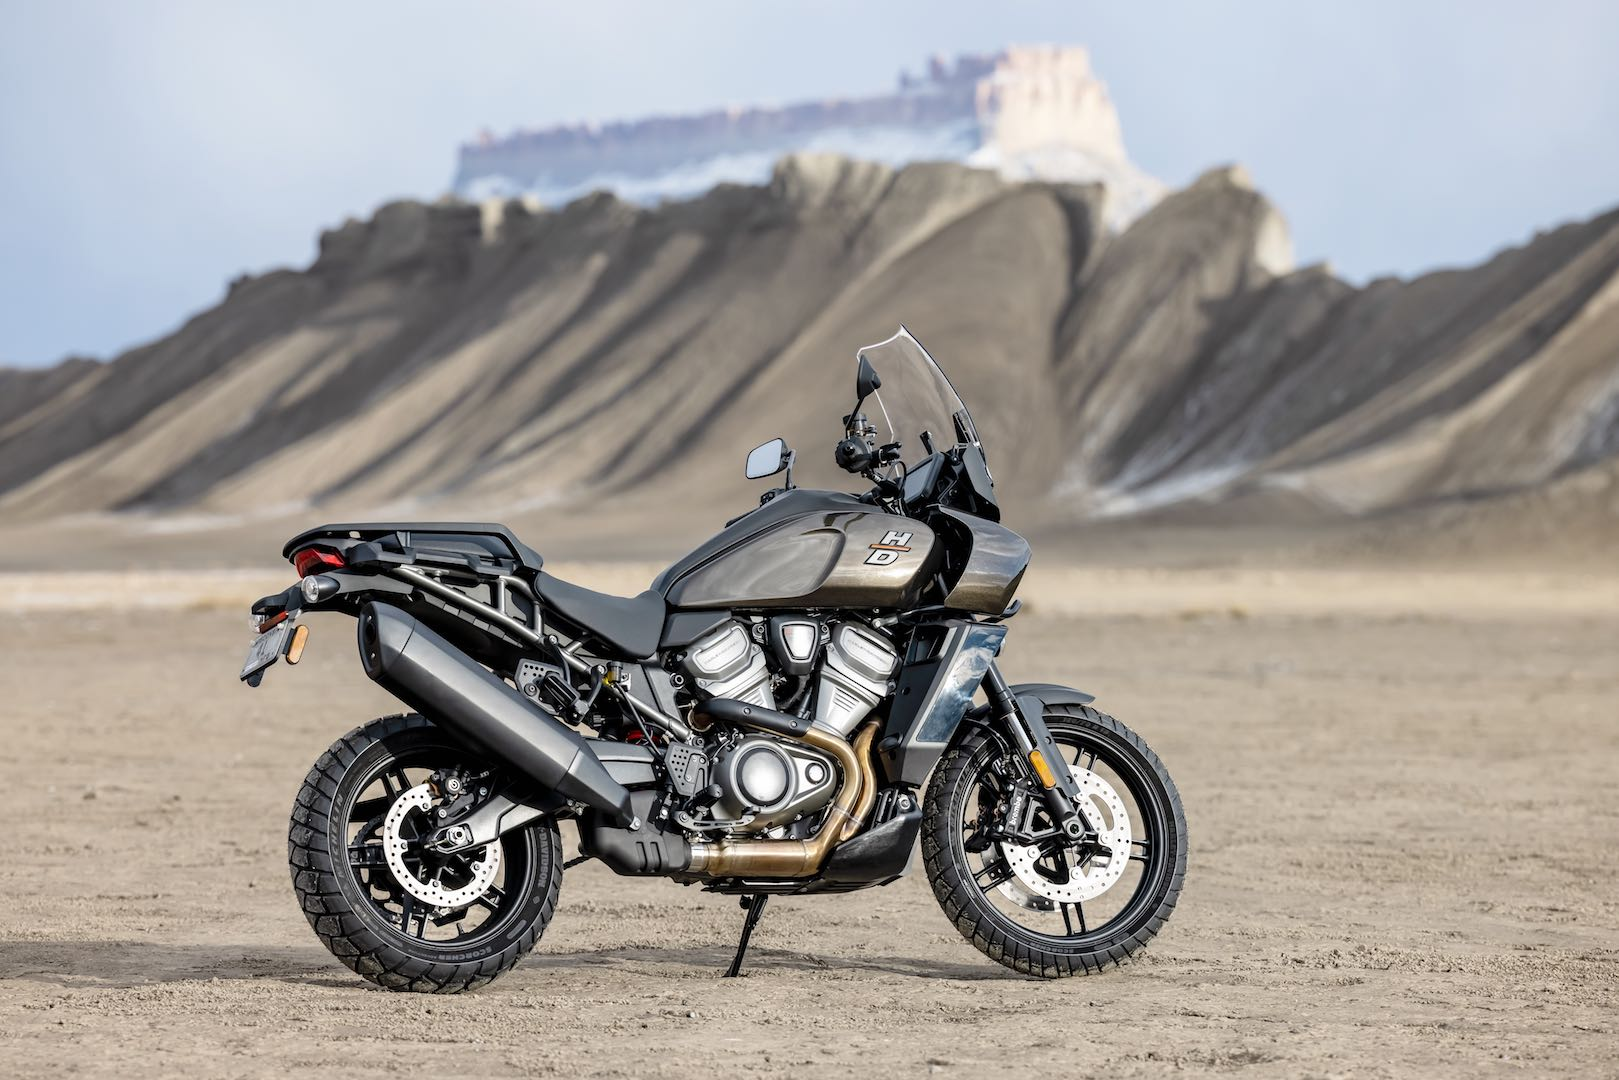 2021 Pan America 1250 exhaust